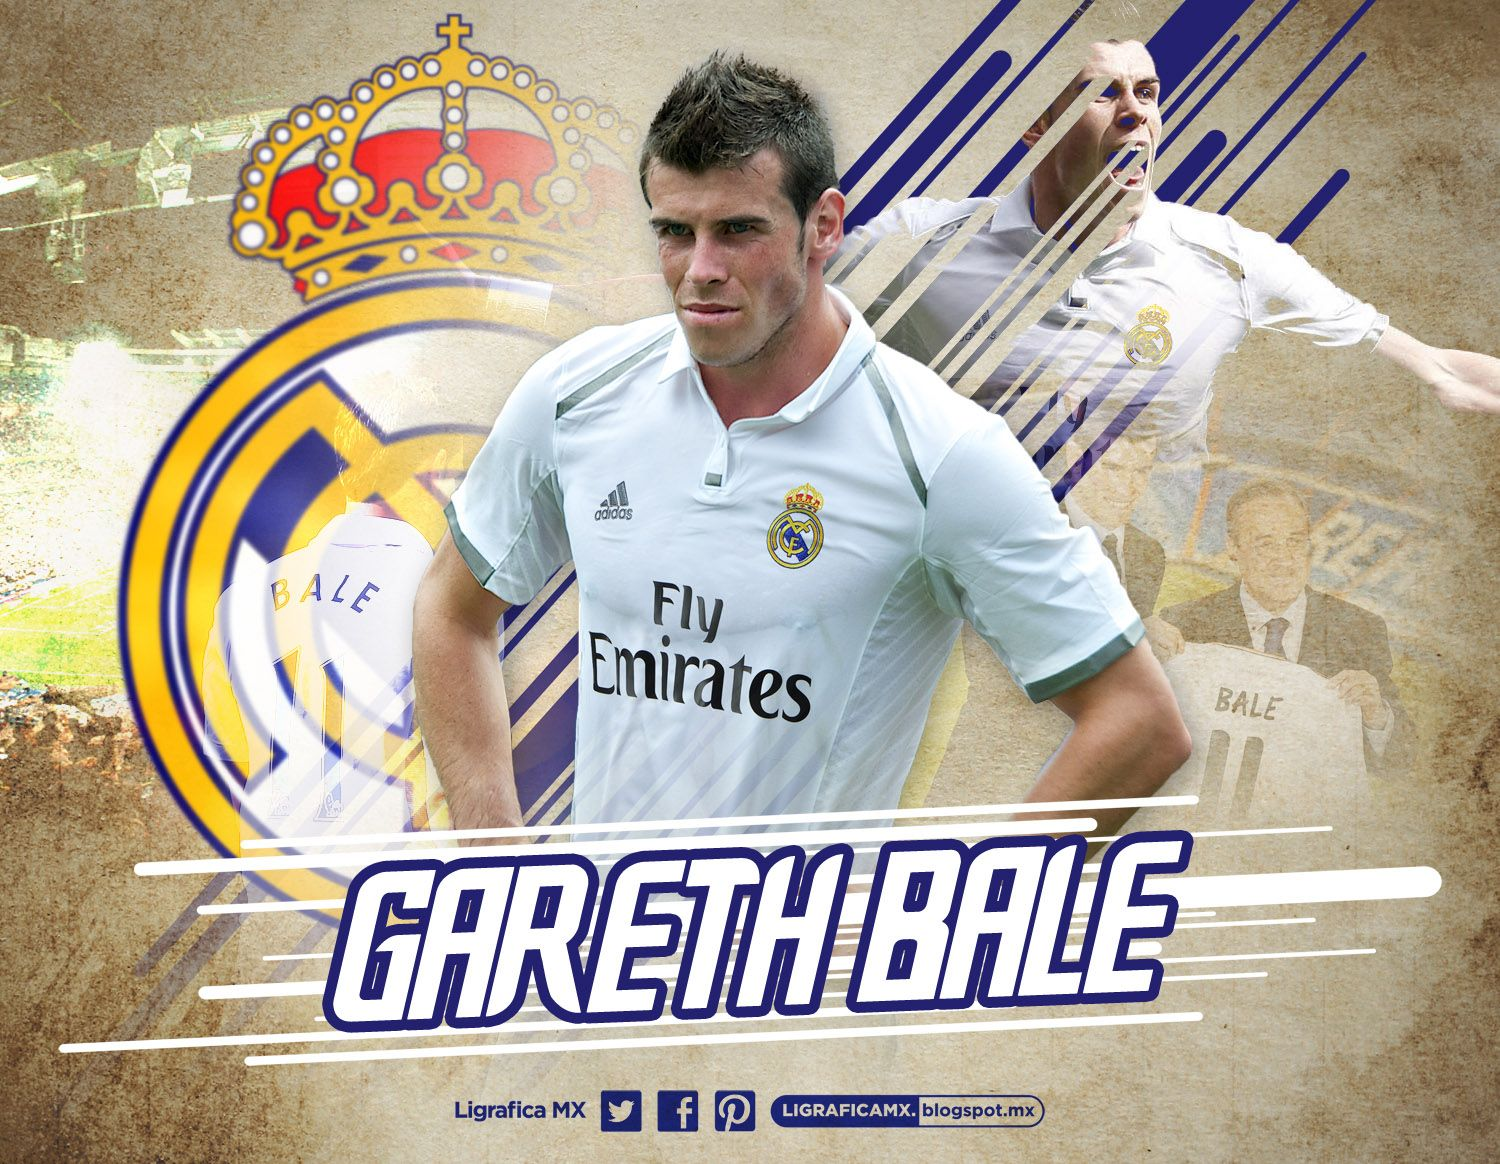 Mobile compatible gareth bale wallpapers marylouise fagan hd mobile compatible gareth bale wallpapers marylouise fagan voltagebd Gallery